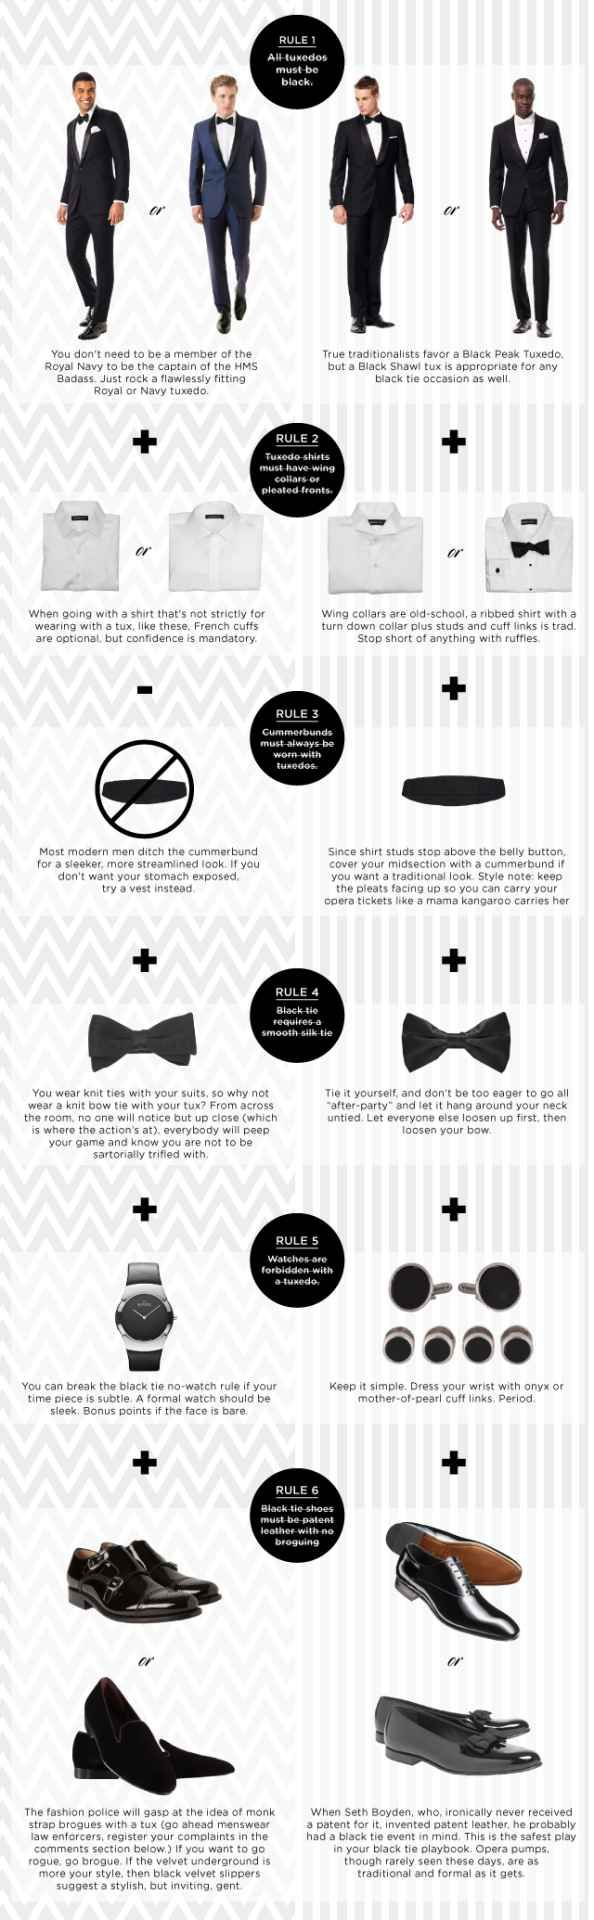 tuxedo rules, a guide to break all the black tie rules